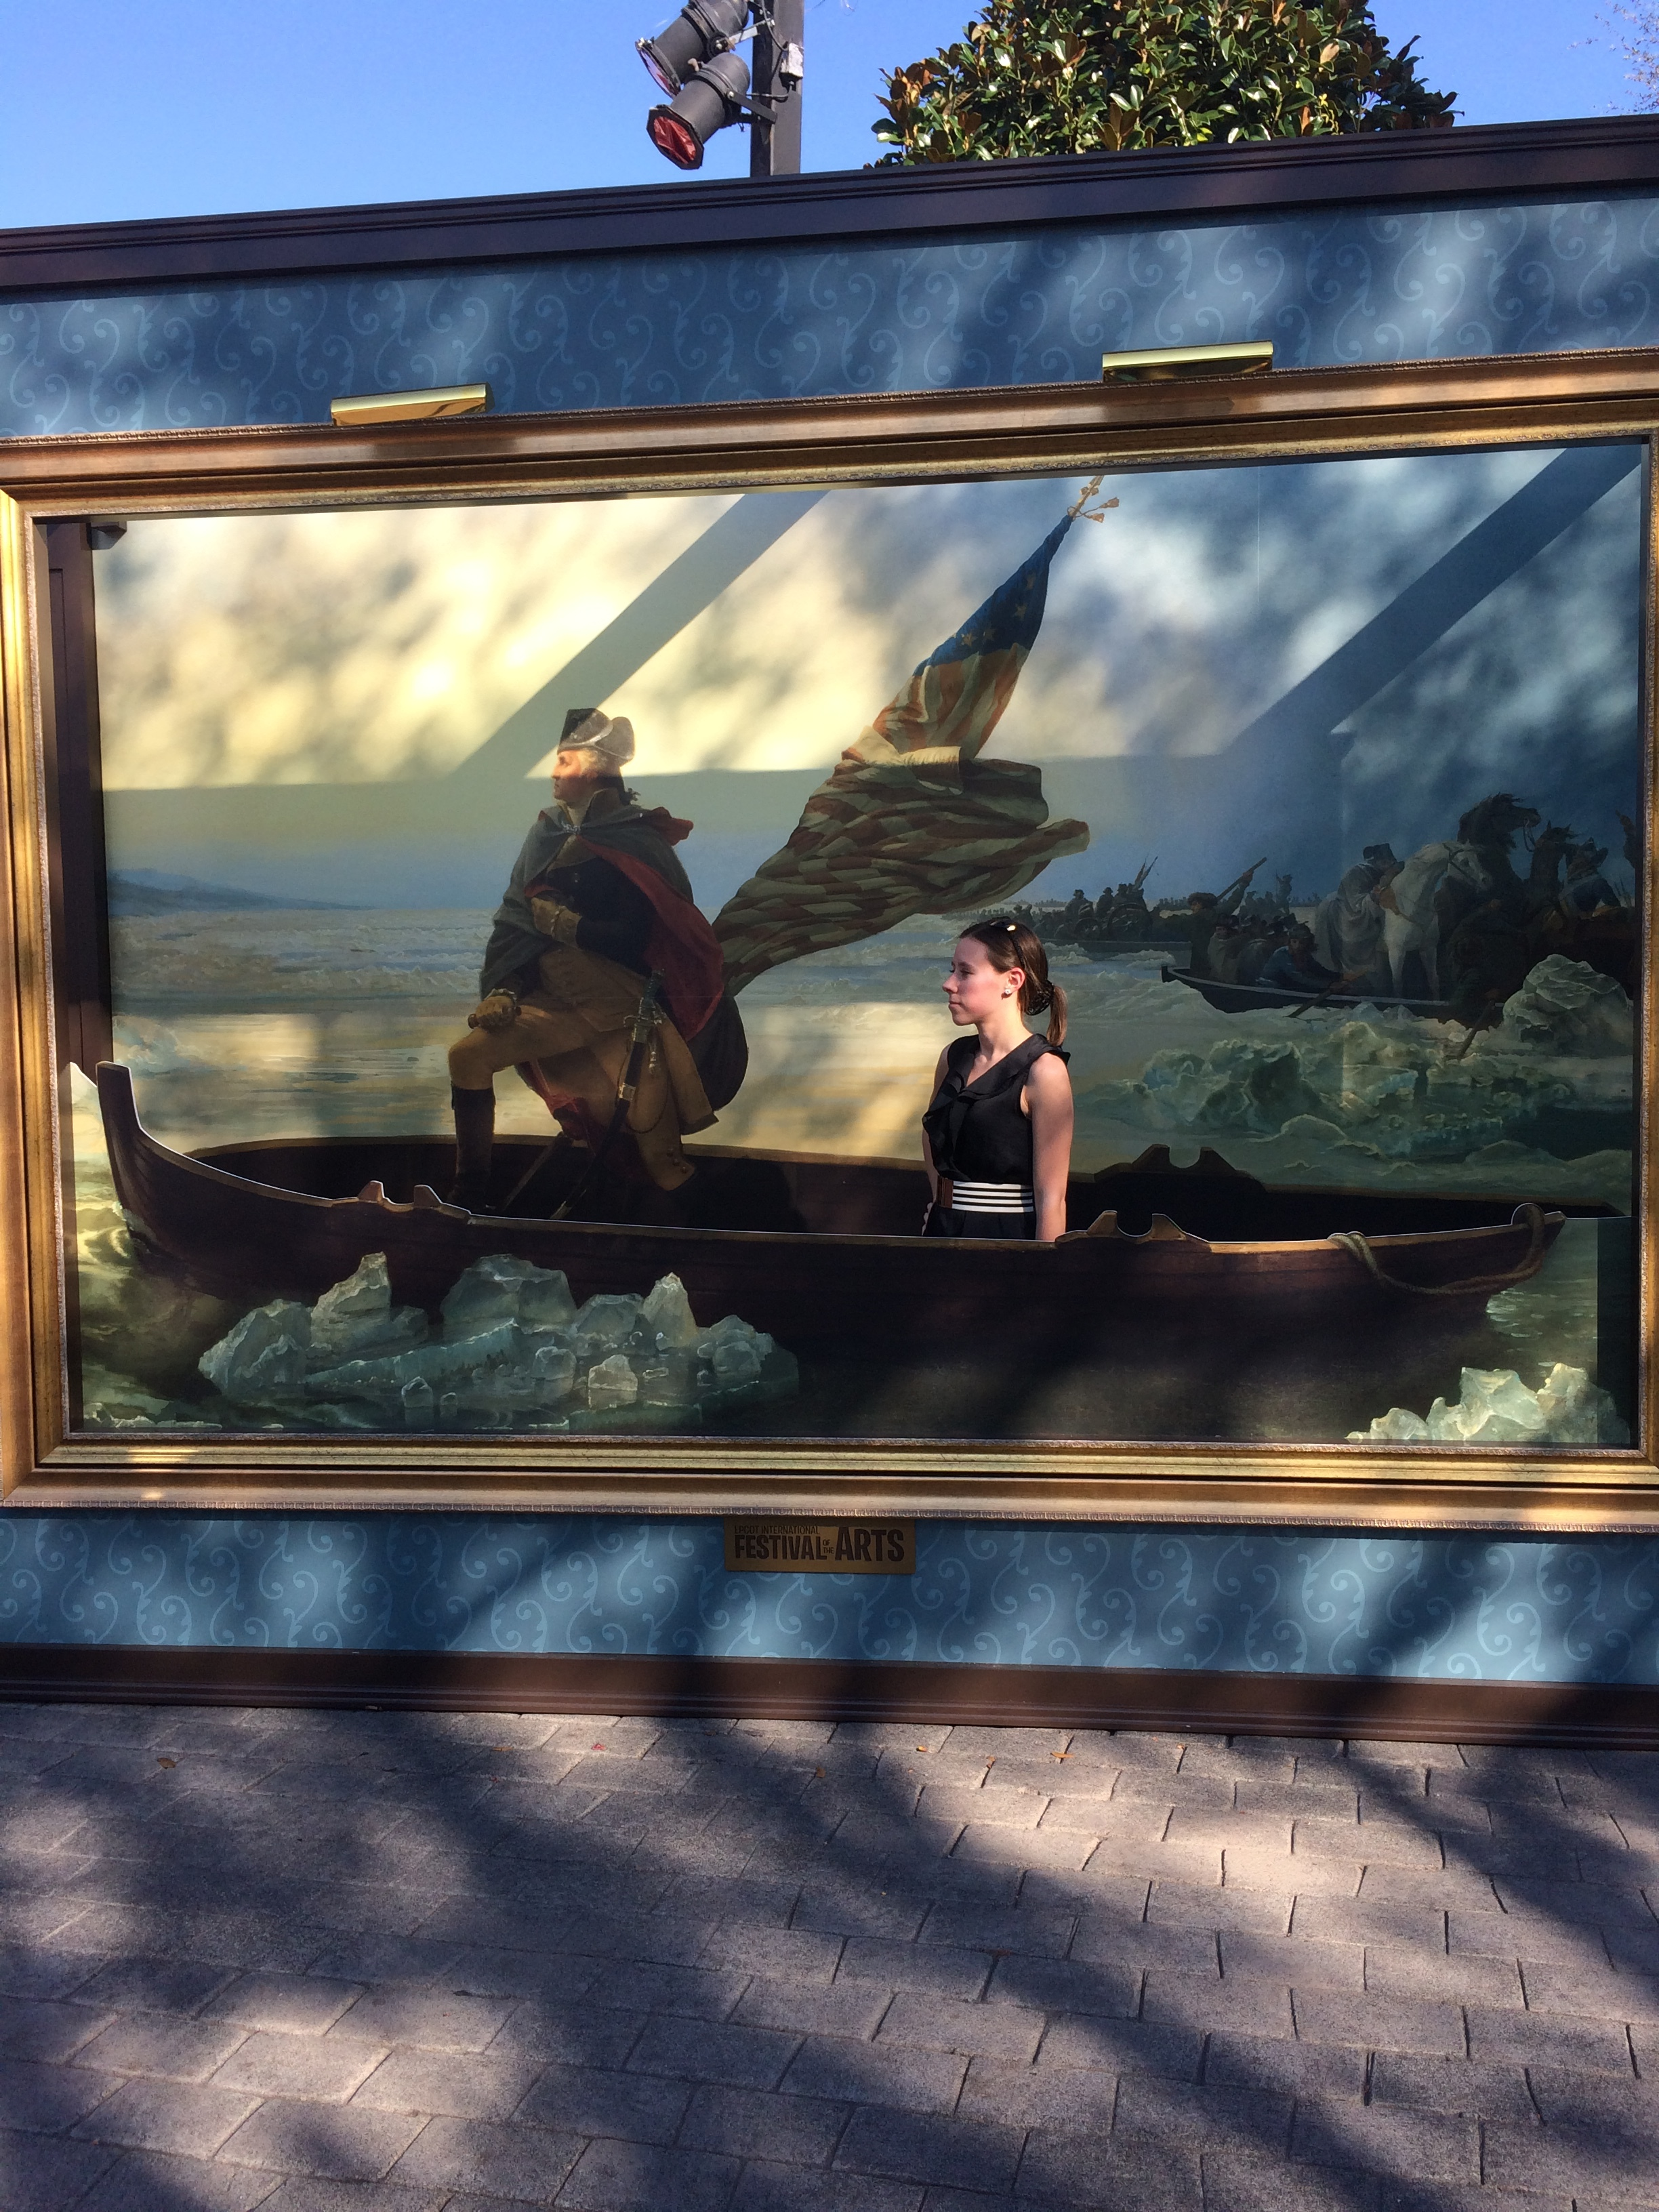 Me riding the Delaware with Washington, which is so cool because I used to live right next to this river!